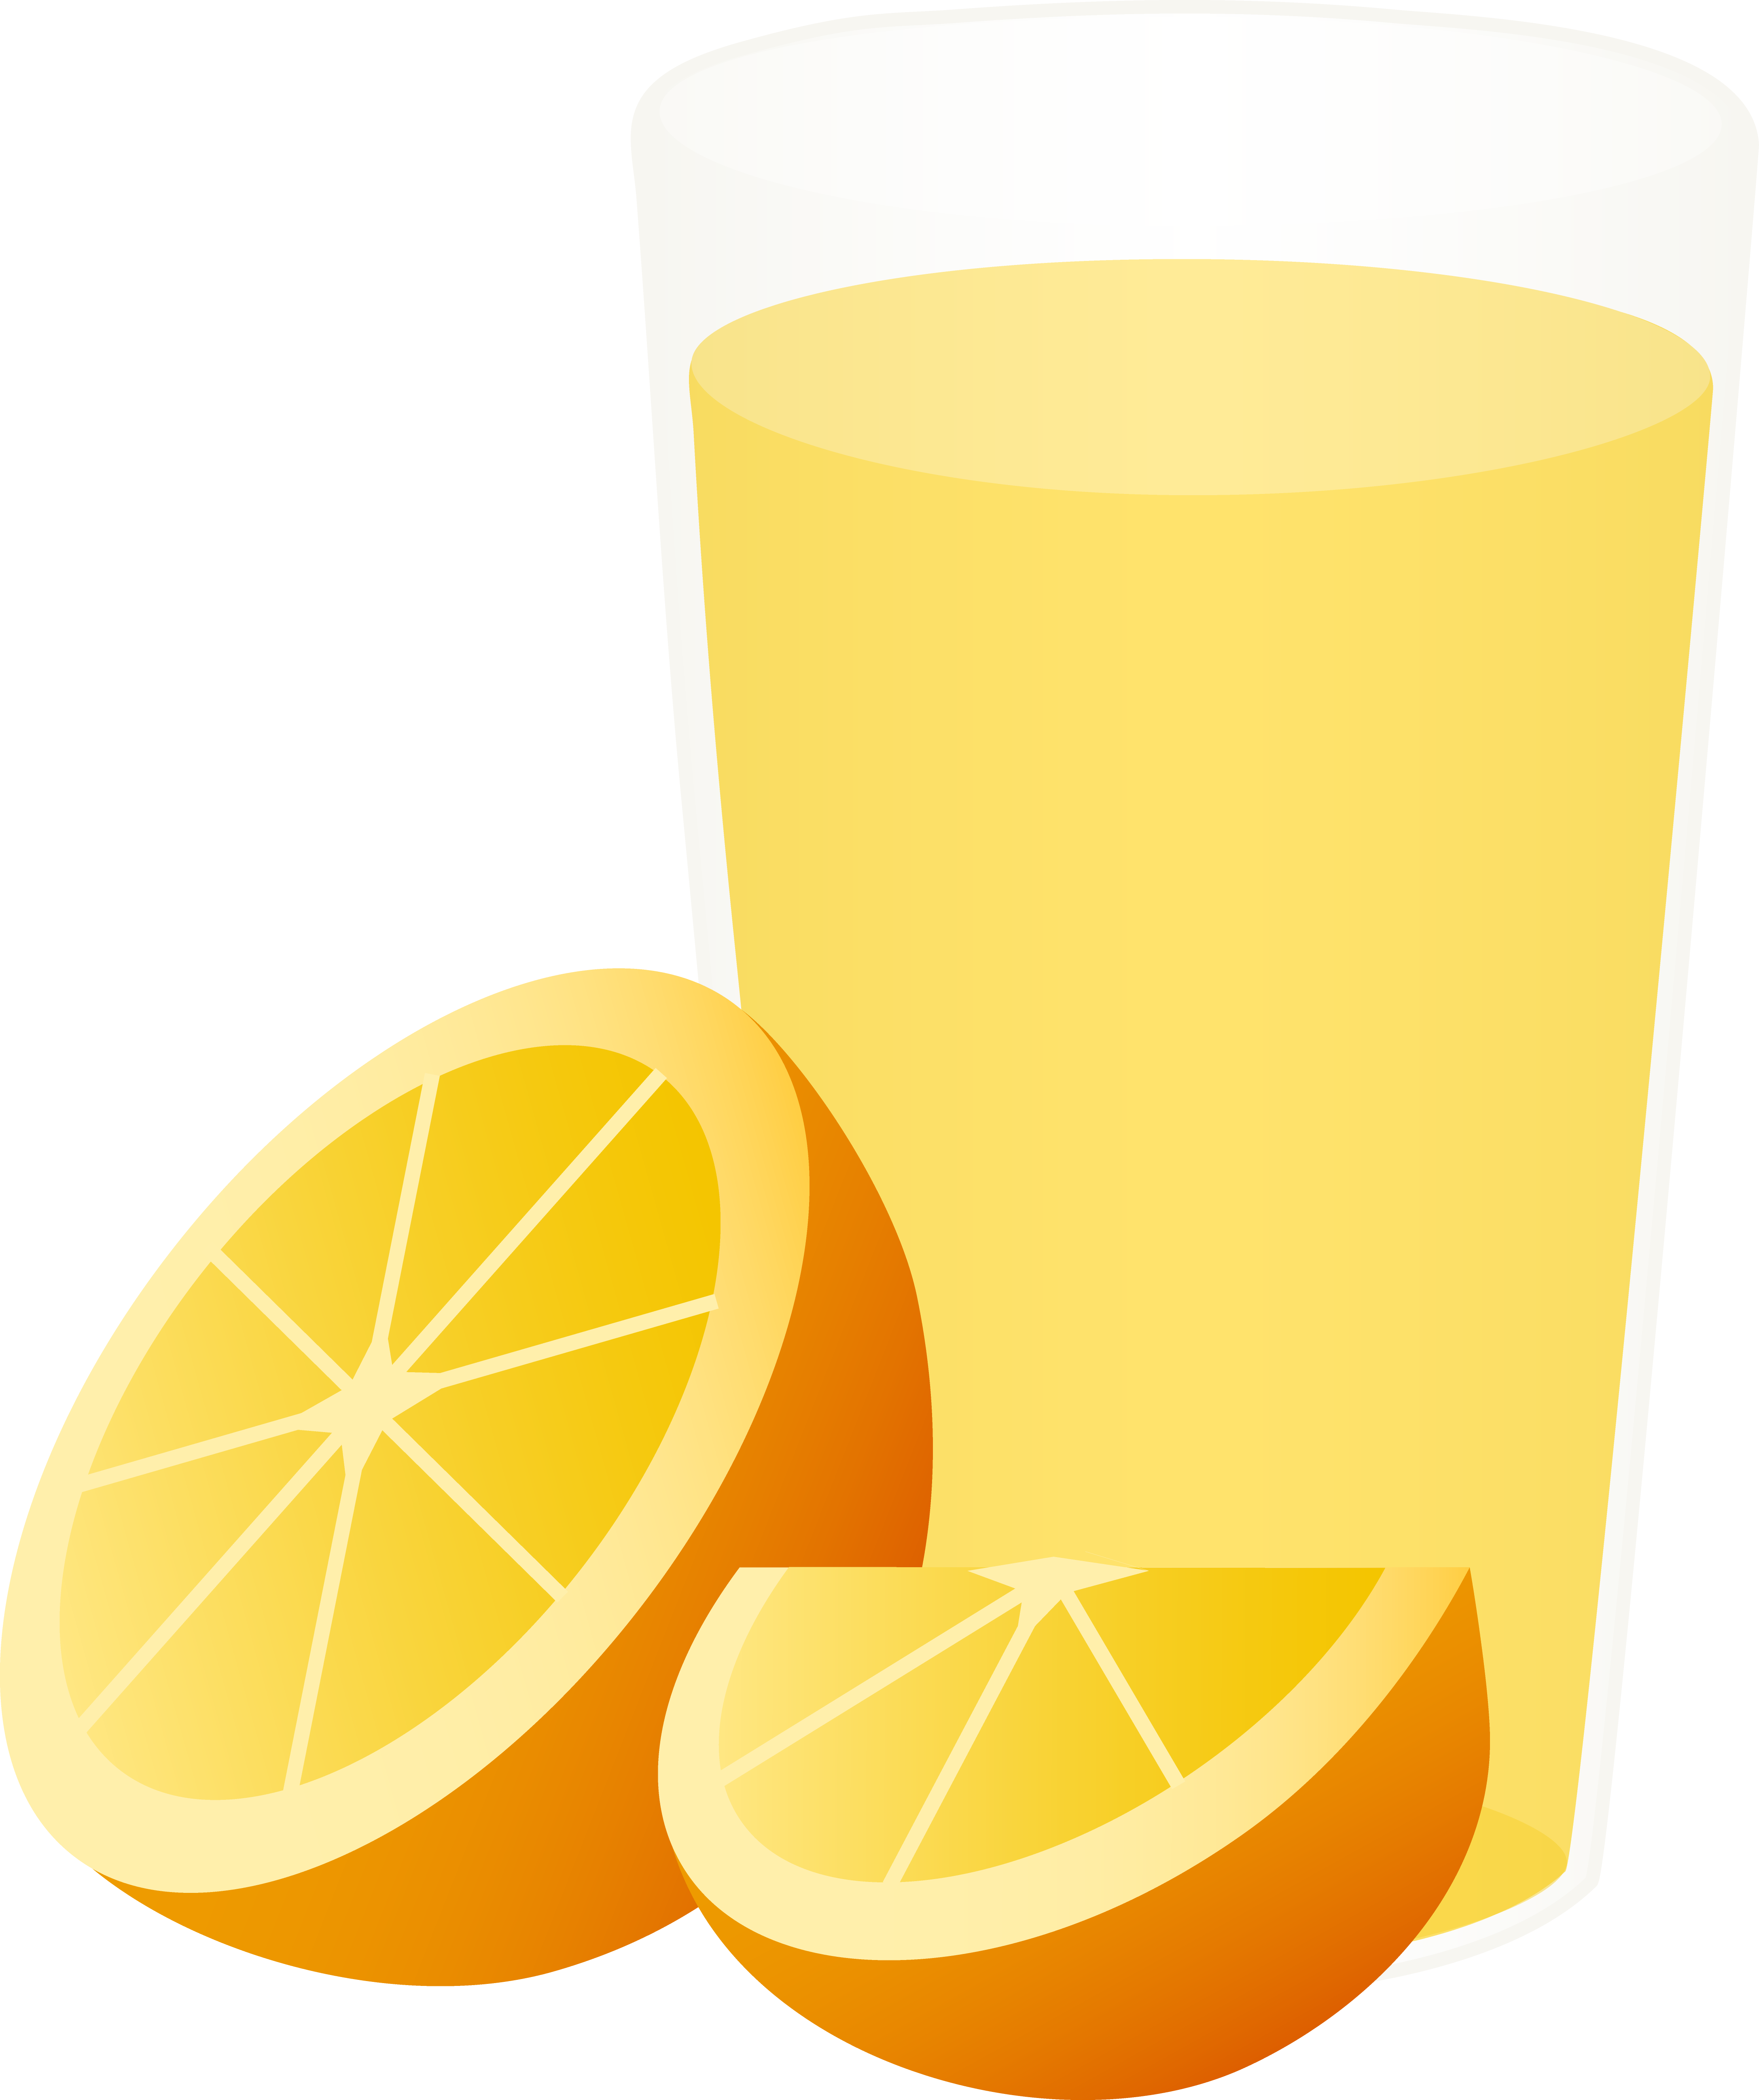 Fruits clipart orange. Glass of juice with